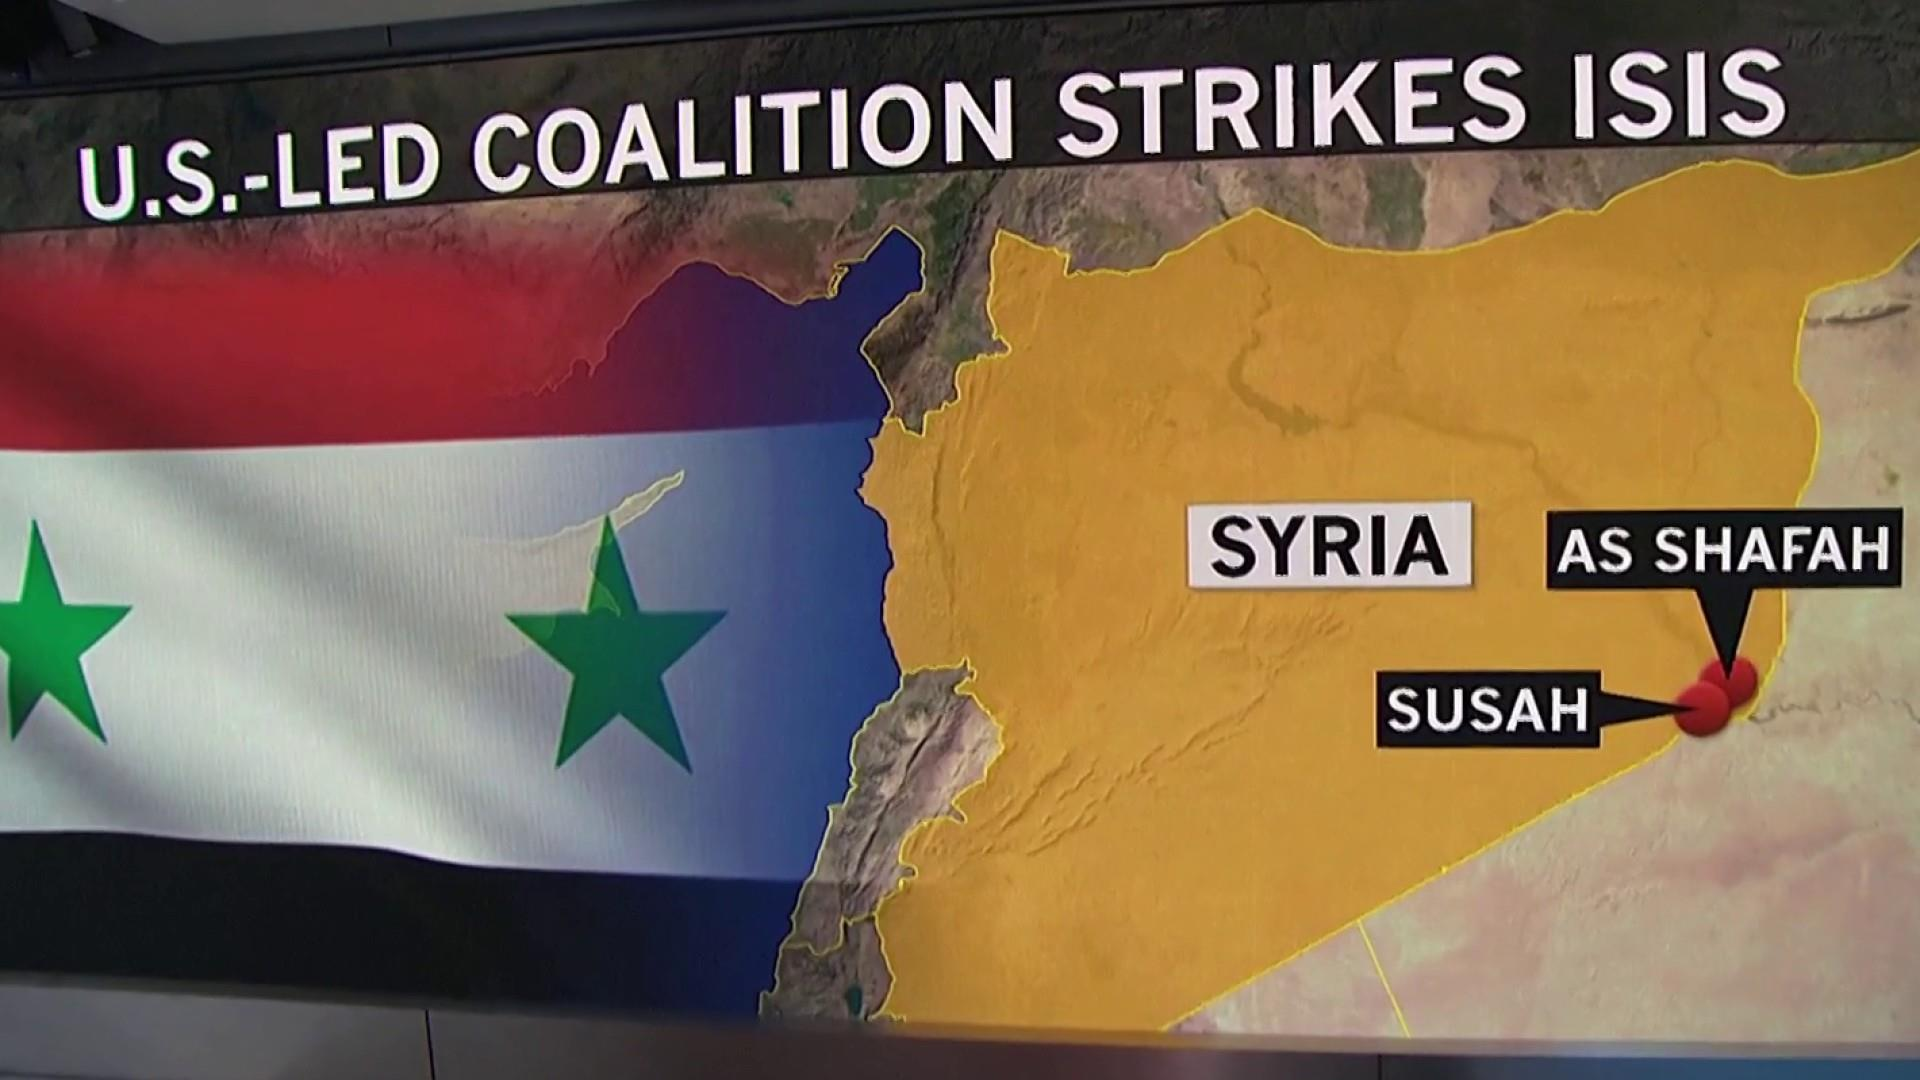 What is the U.S. military strategy in Syria?